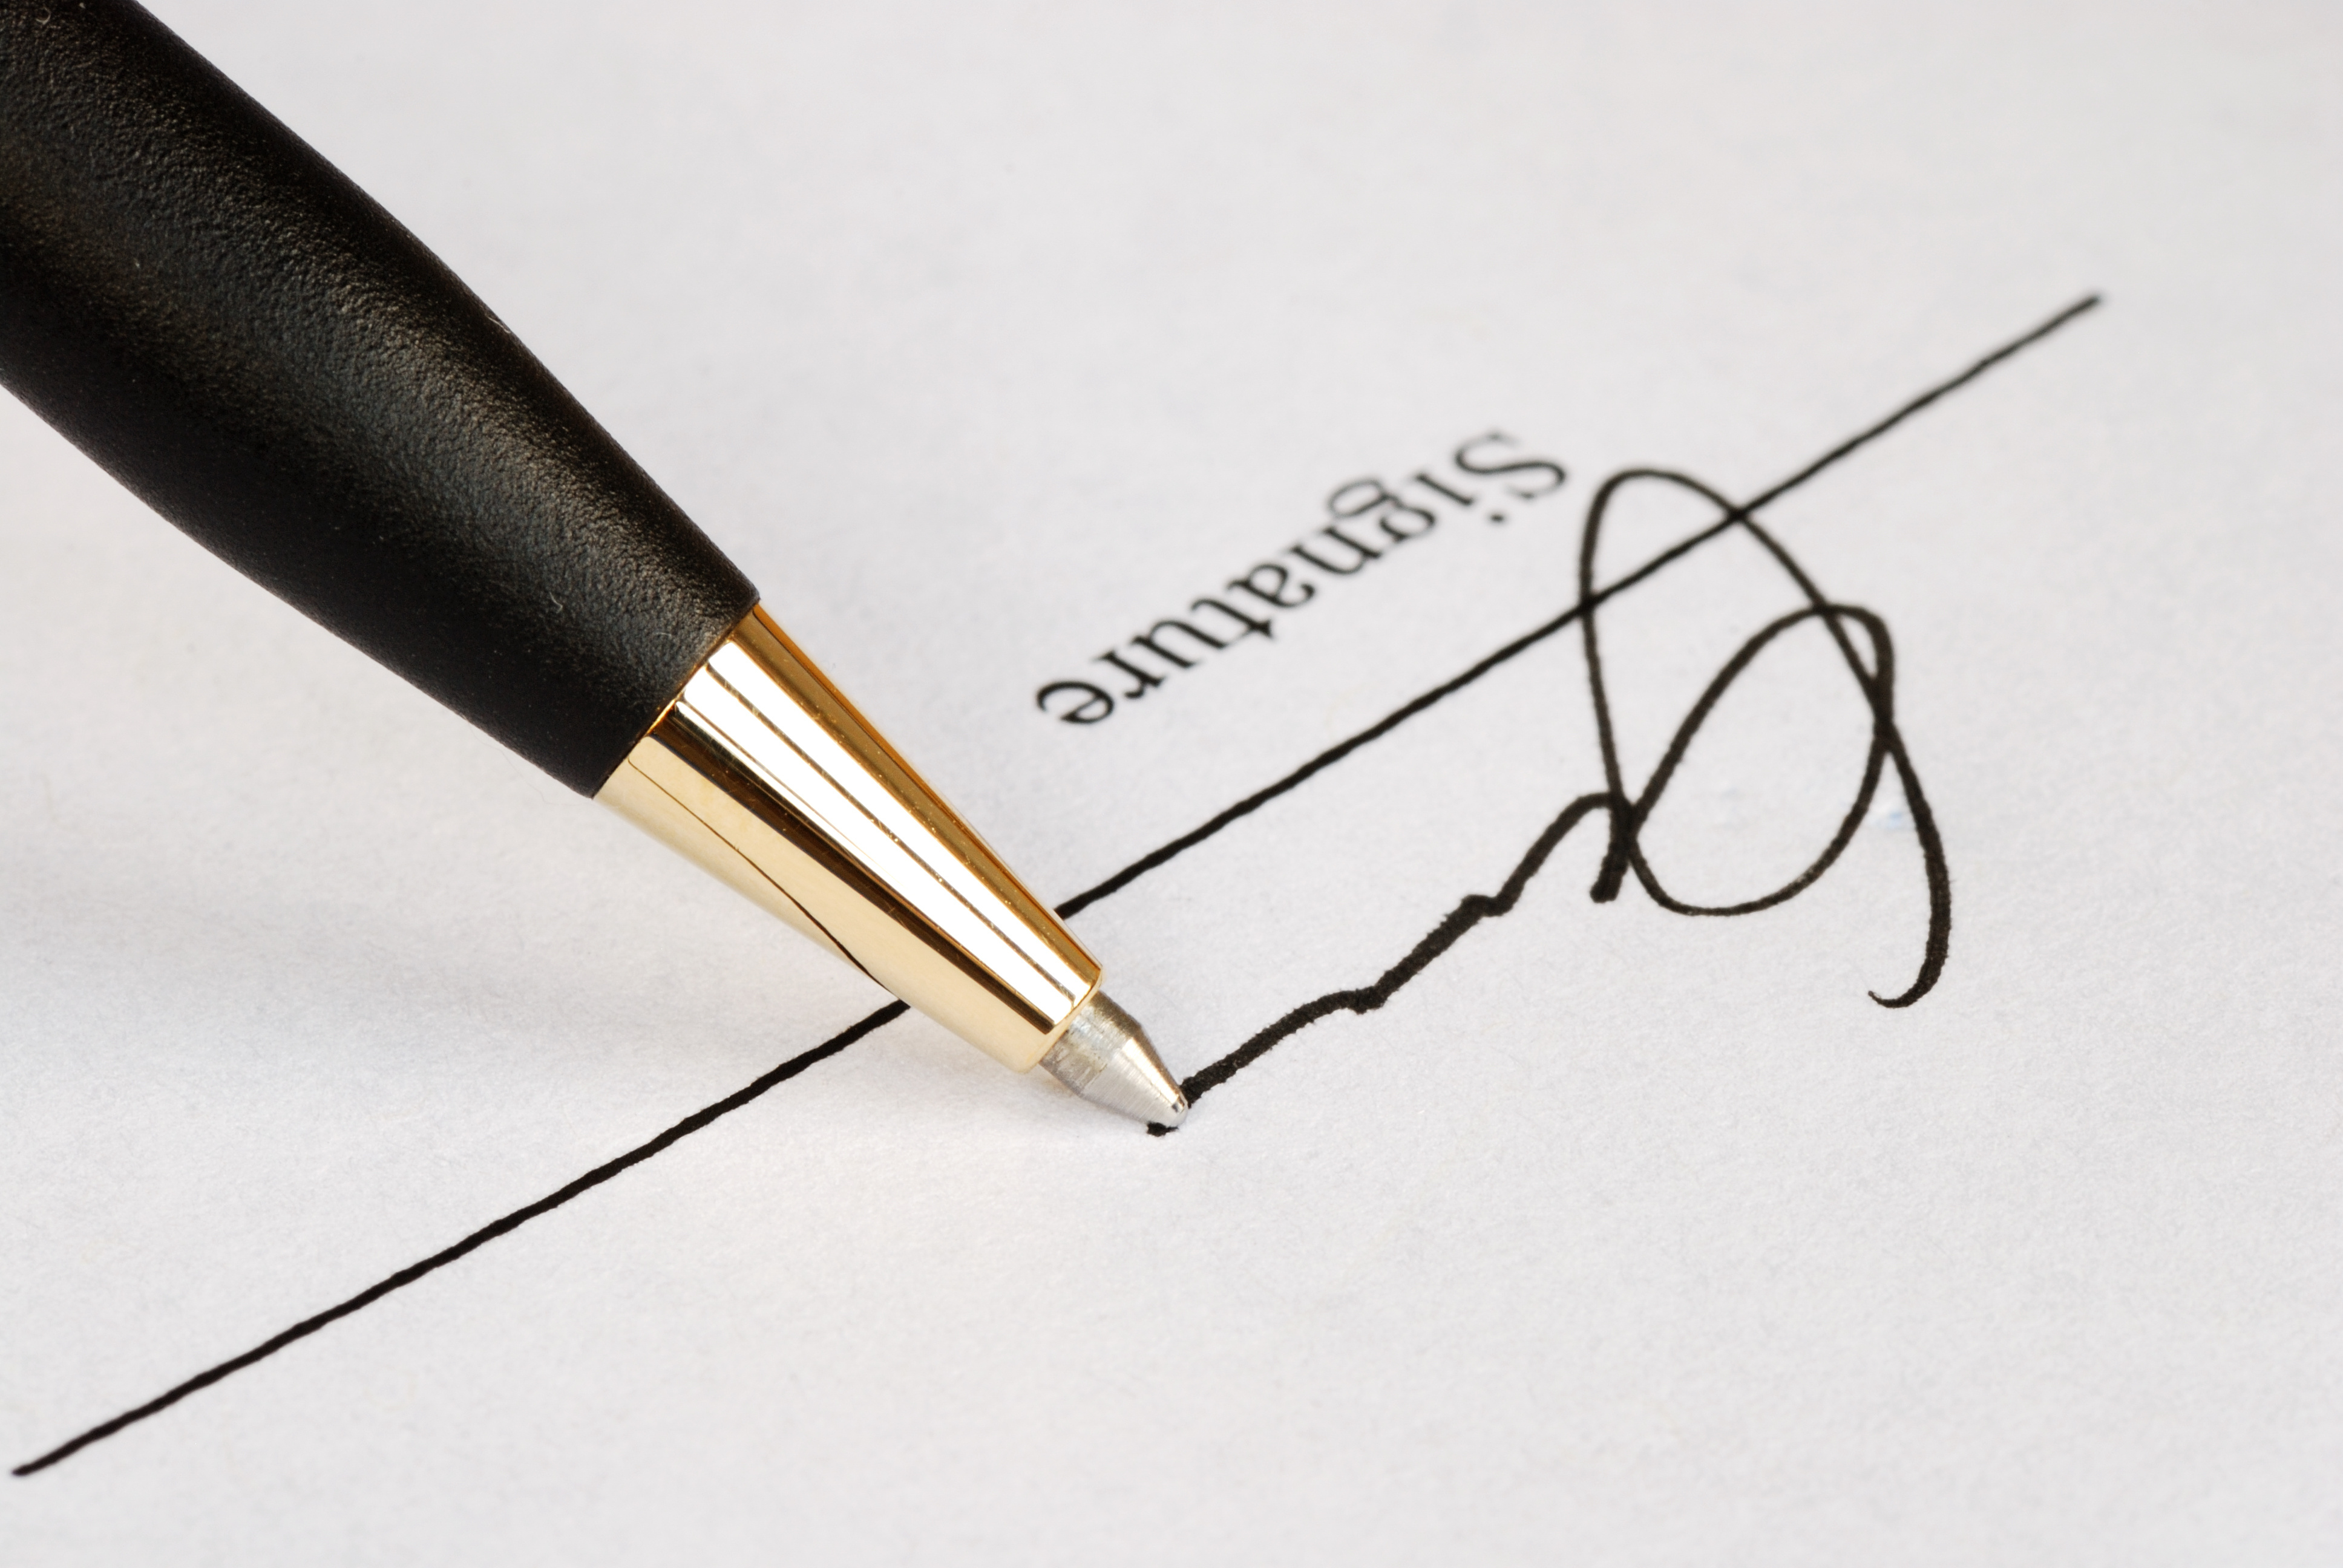 False Representation and Fraudulent Claims for Real Estate Titles